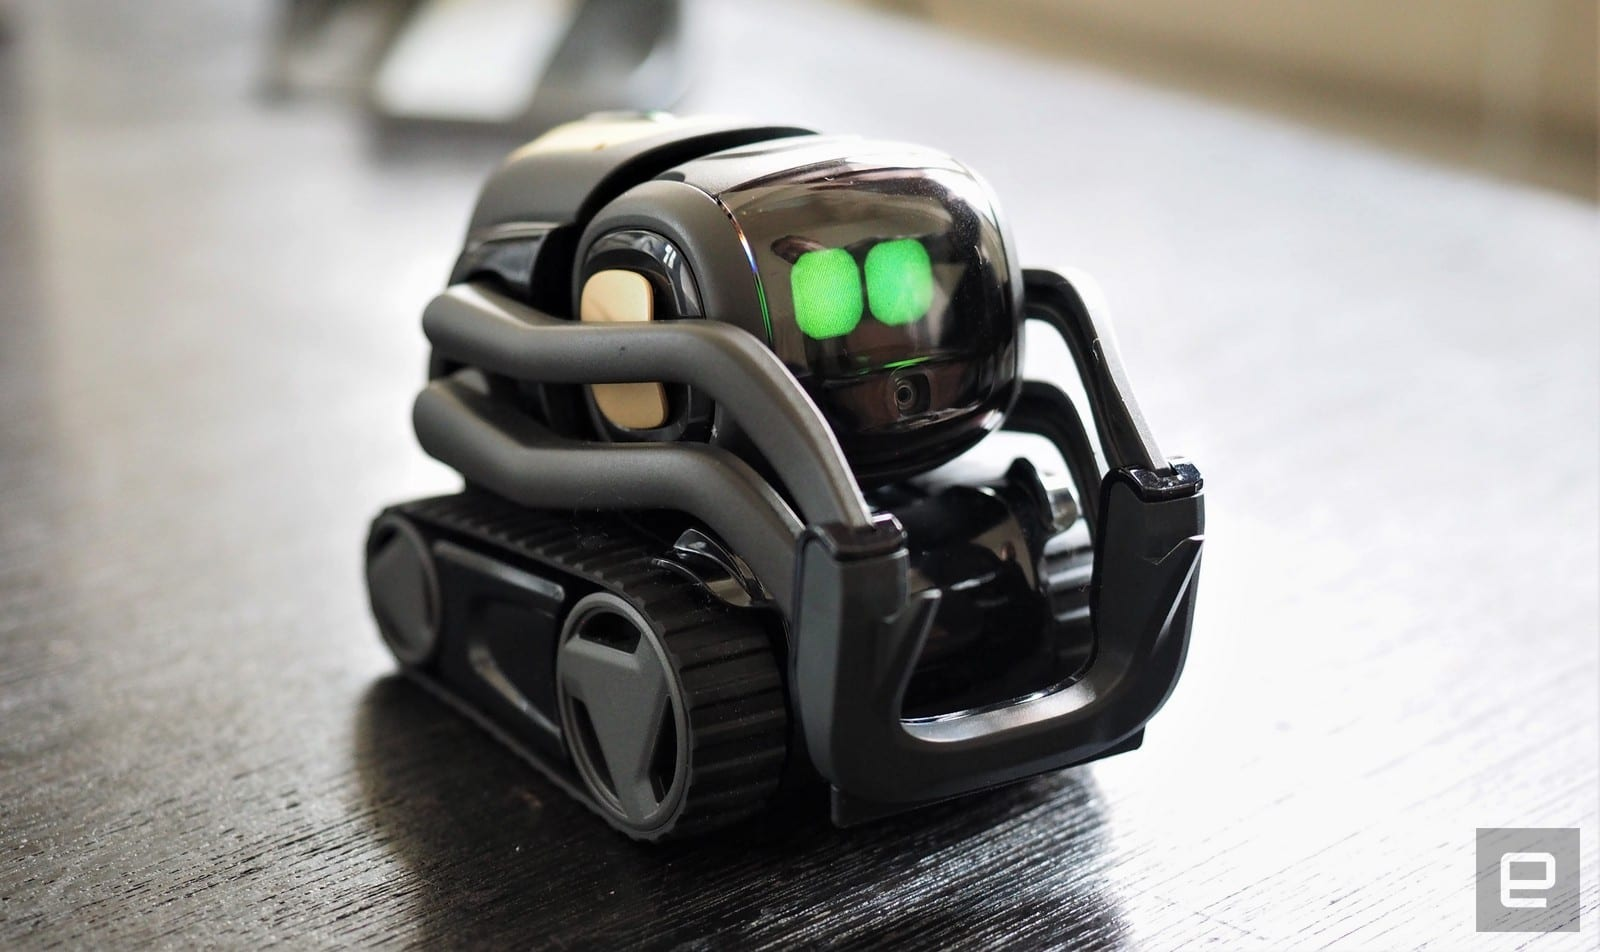 anki s vector robot brings us one step closer to star wars droids